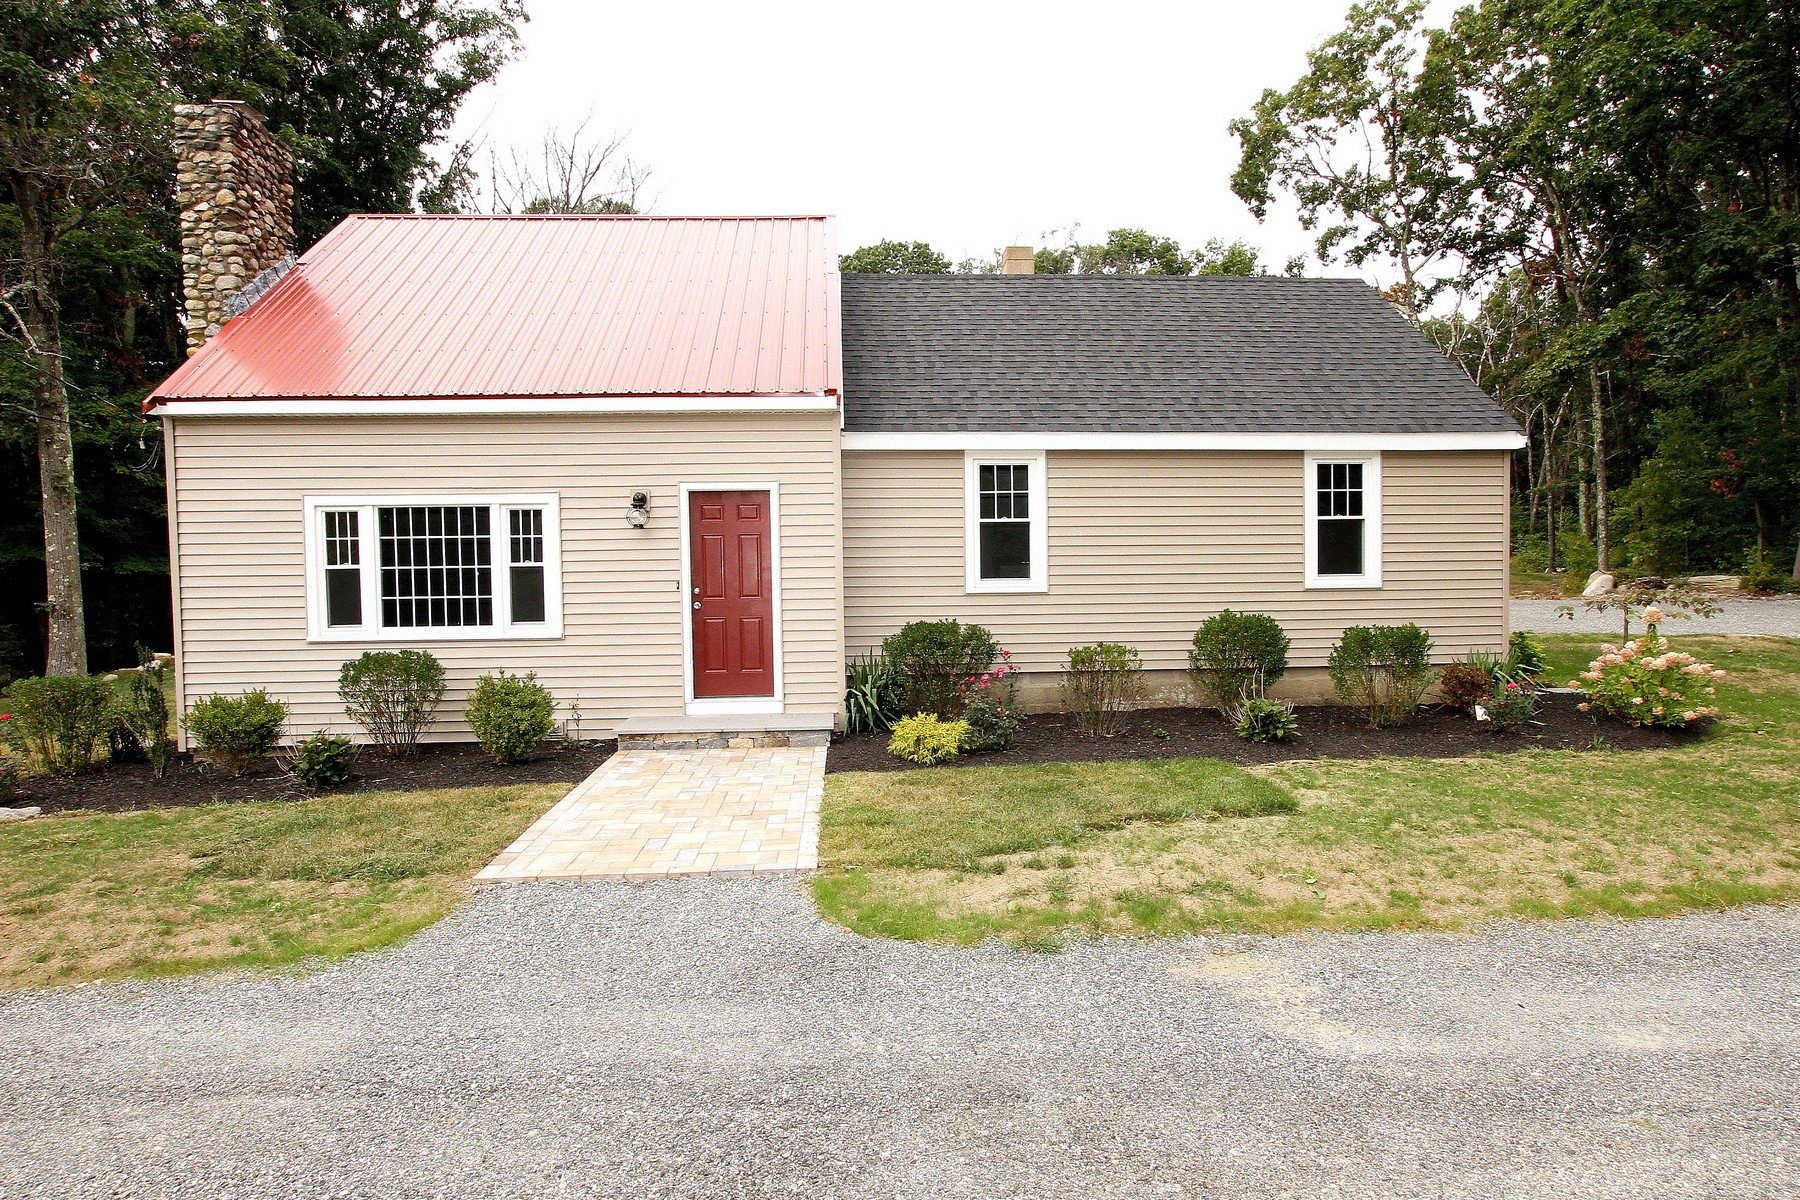 Single Family Homes for Sale at Charming Cape With A Metal Roof 452 South Main Street Bellingham, Massachusetts 02019 United States